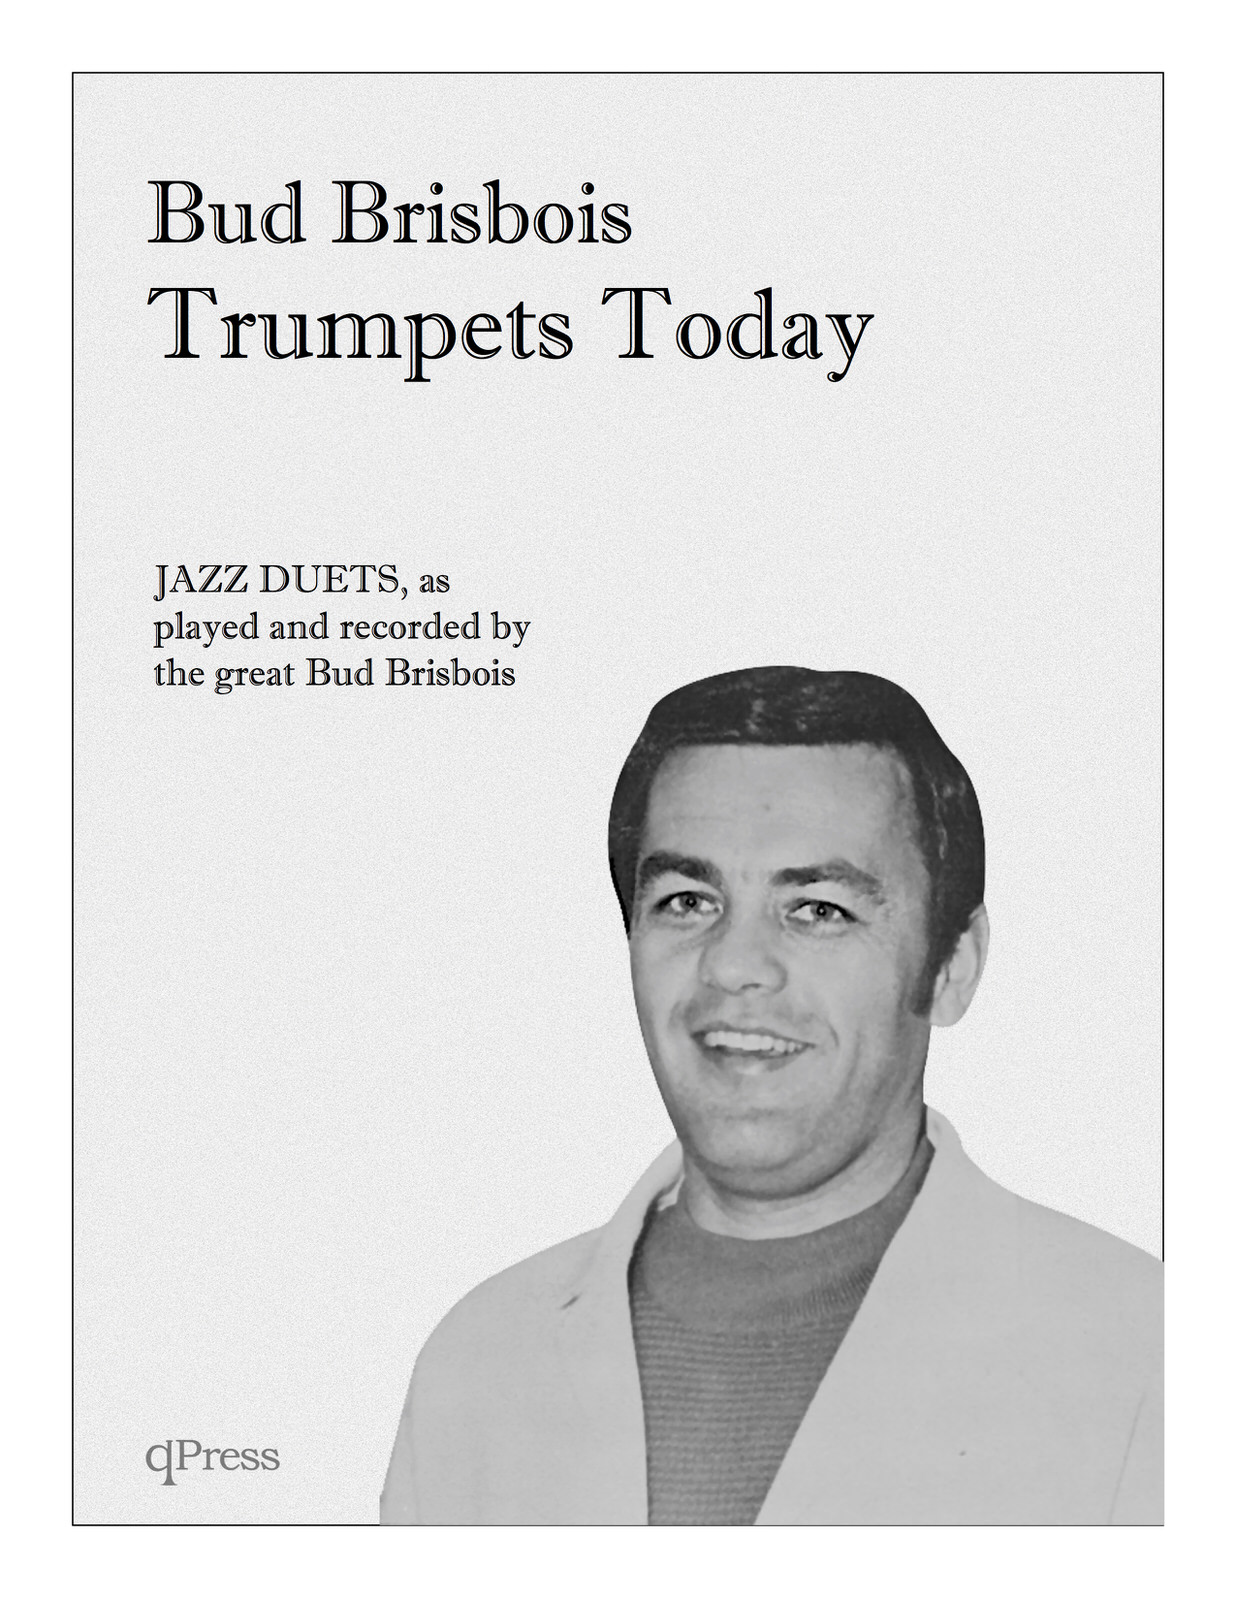 brisbois-trumpet-today-jazz-duets-1